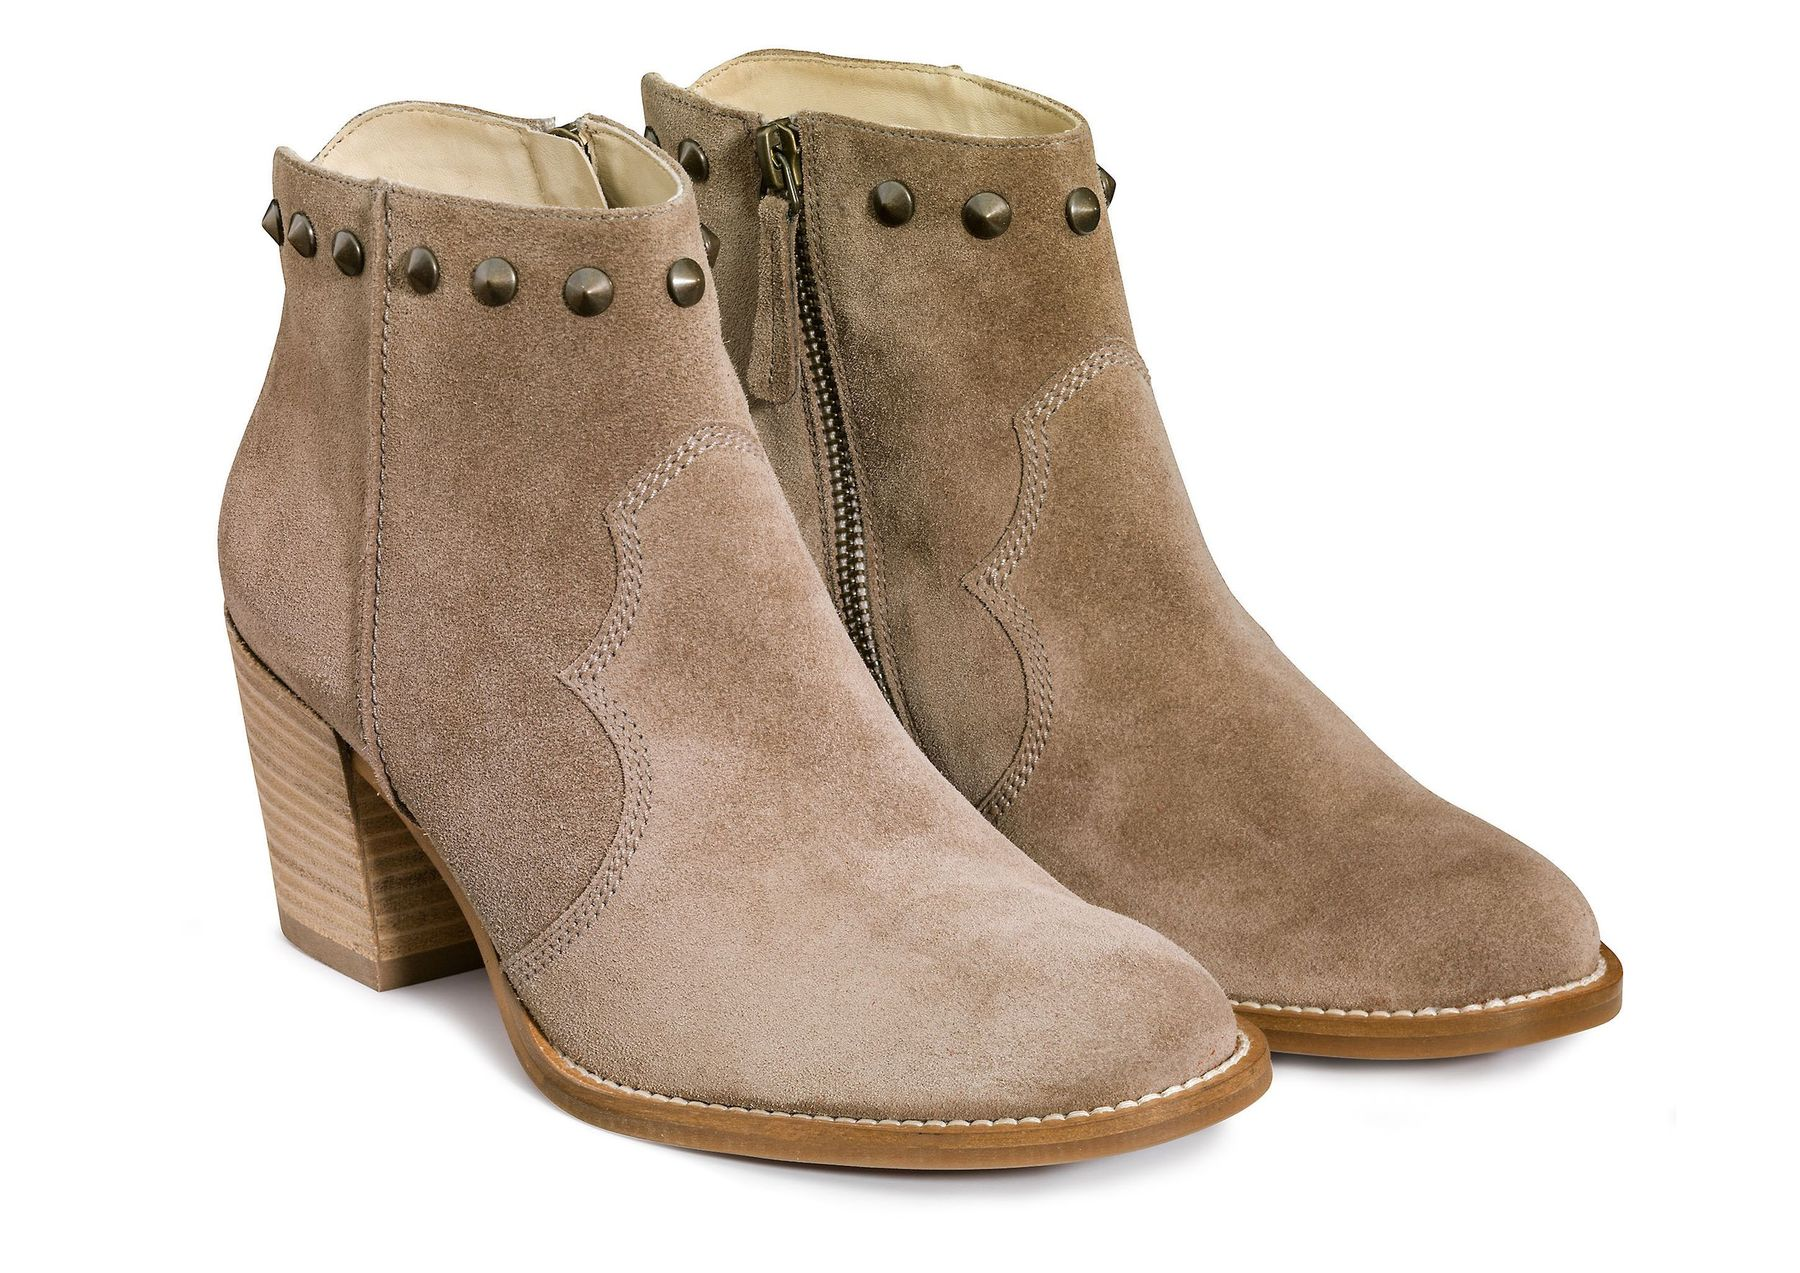 Women's ankle boots, brown with studs Paul Green